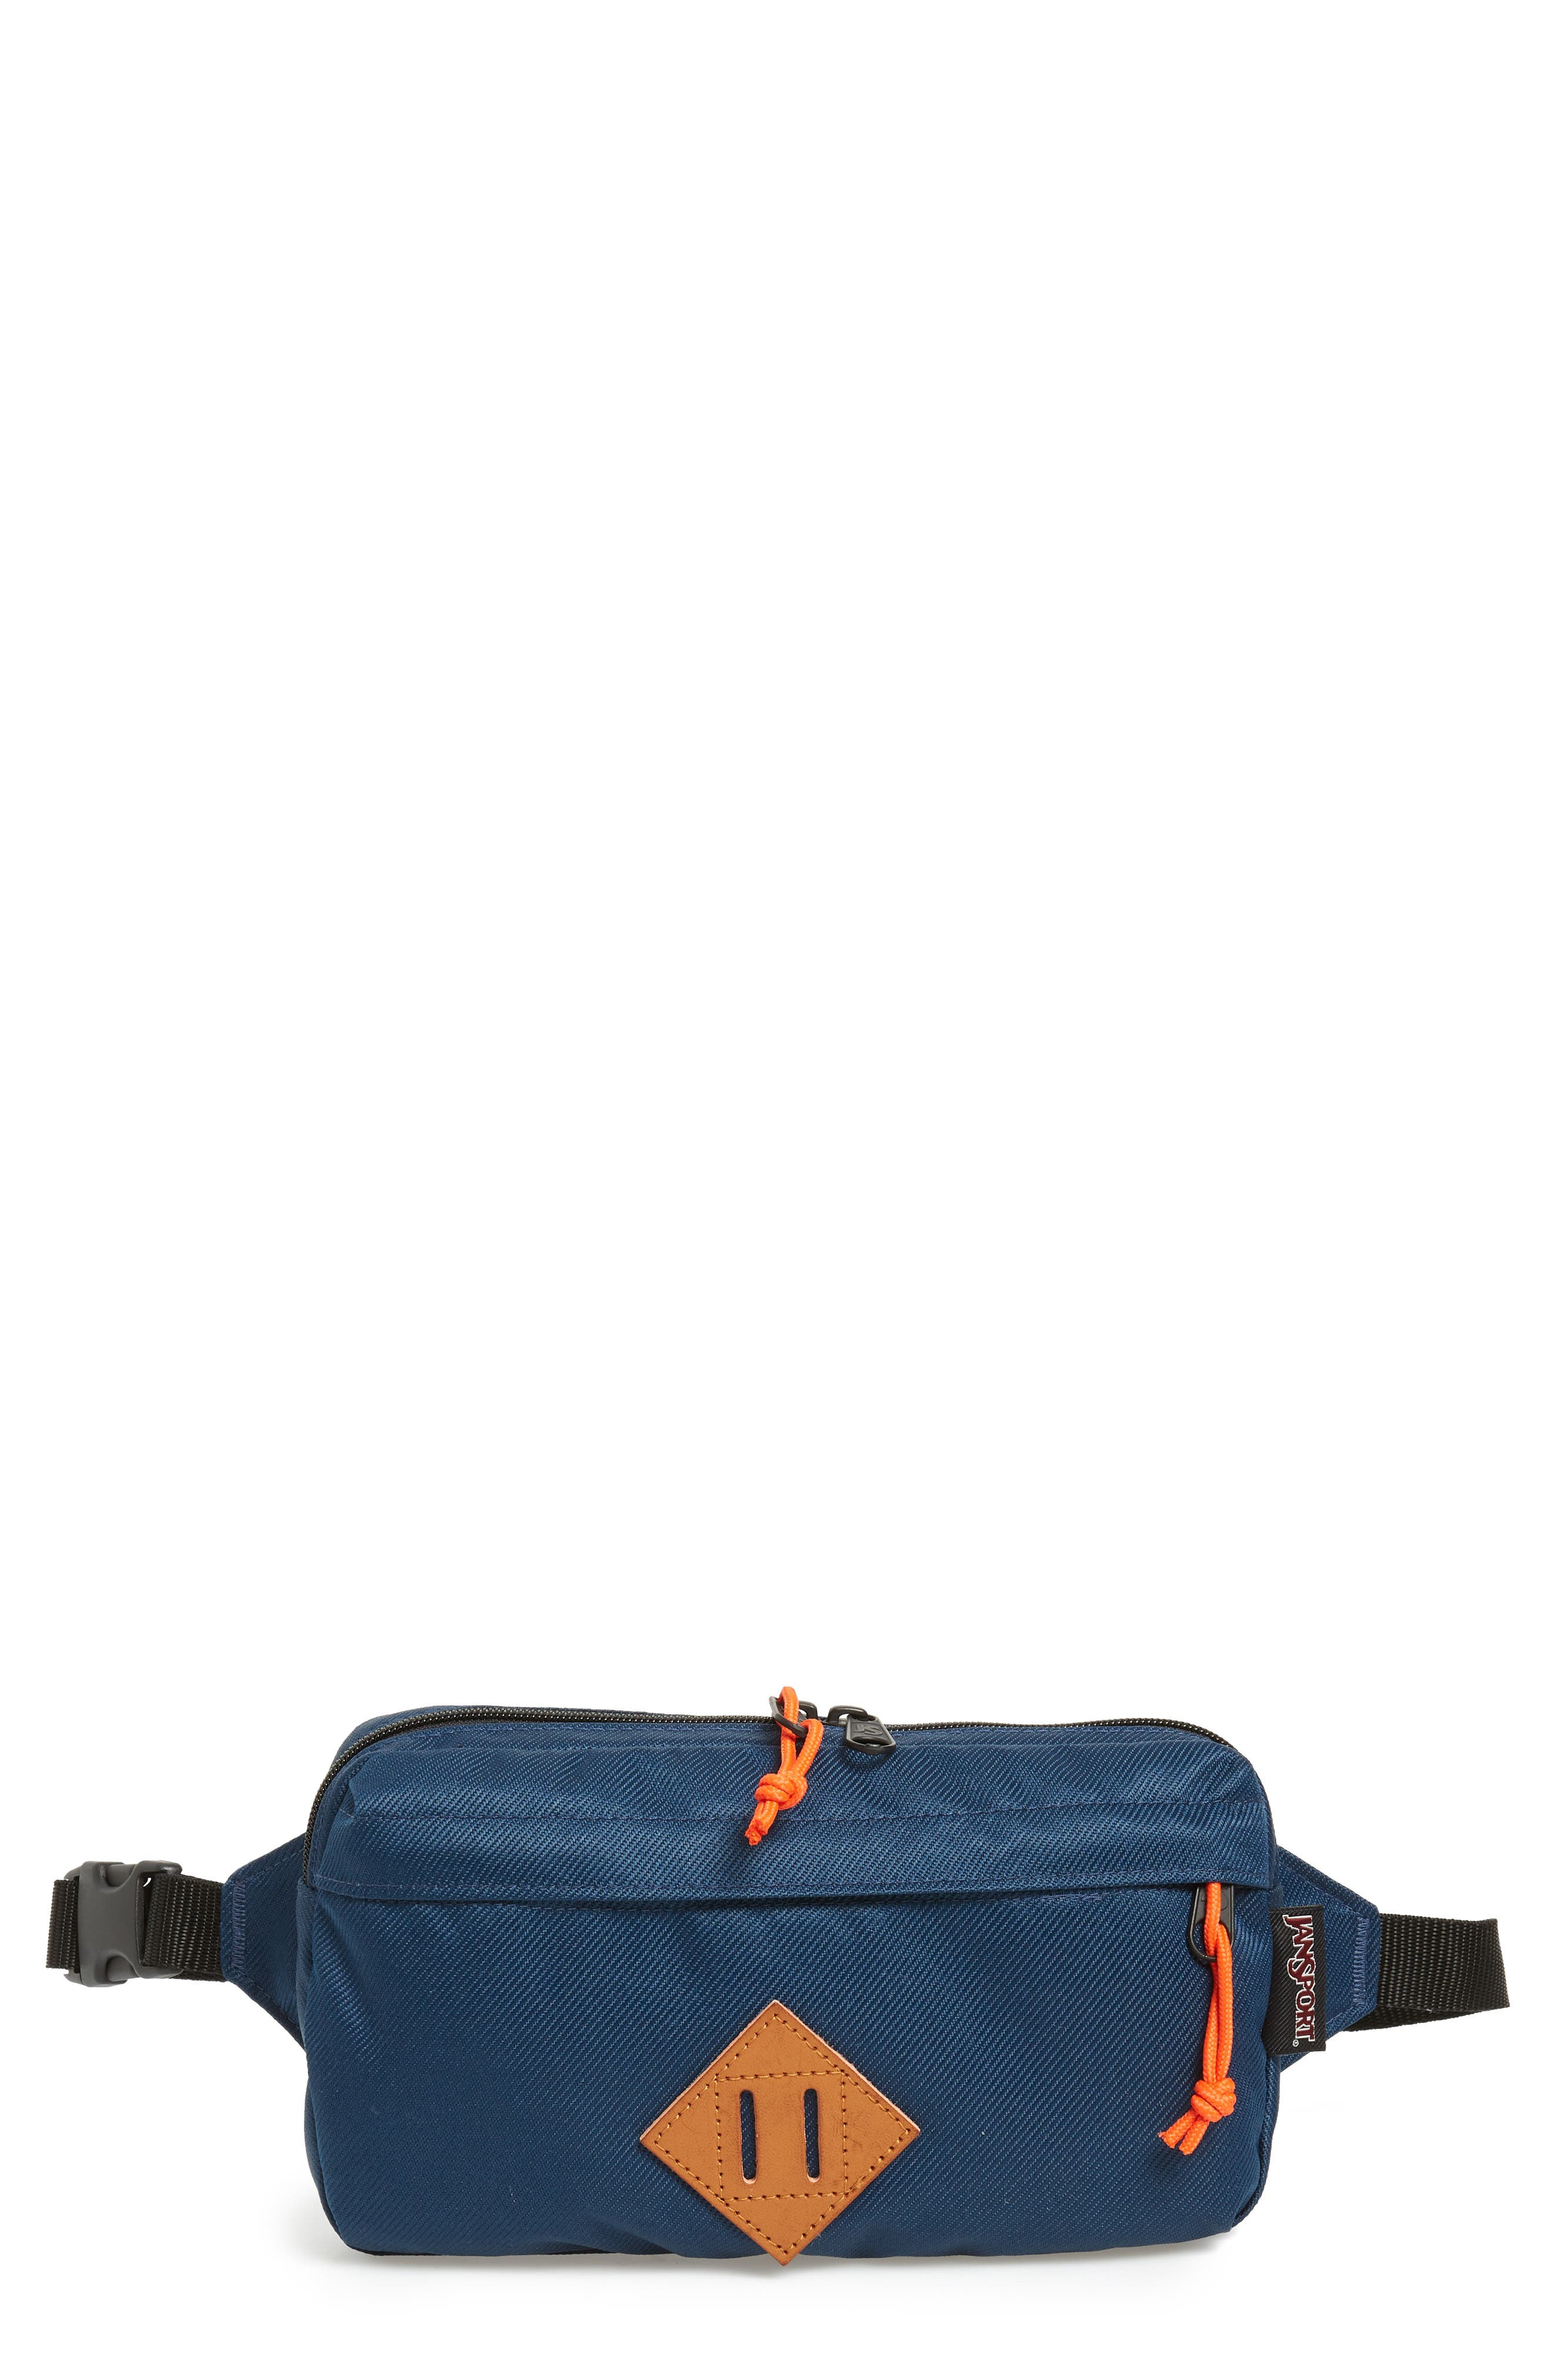 JANSPORT WAISTED BELT BAG - BLUE